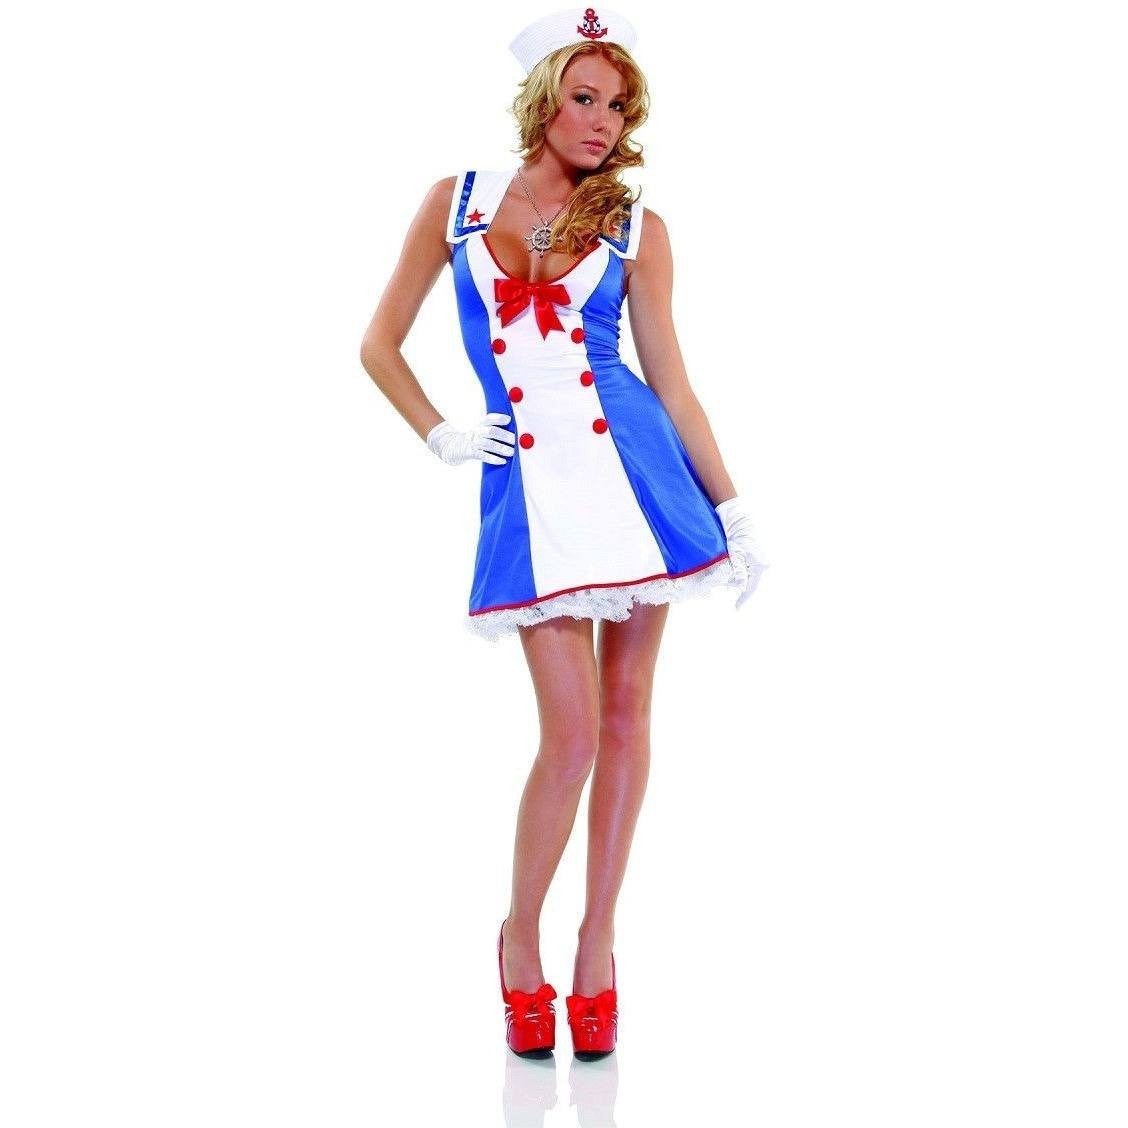 Patriotic sailor fancy dress costume for <span class=money>€39.95 EUR</span> at Flirtywomen